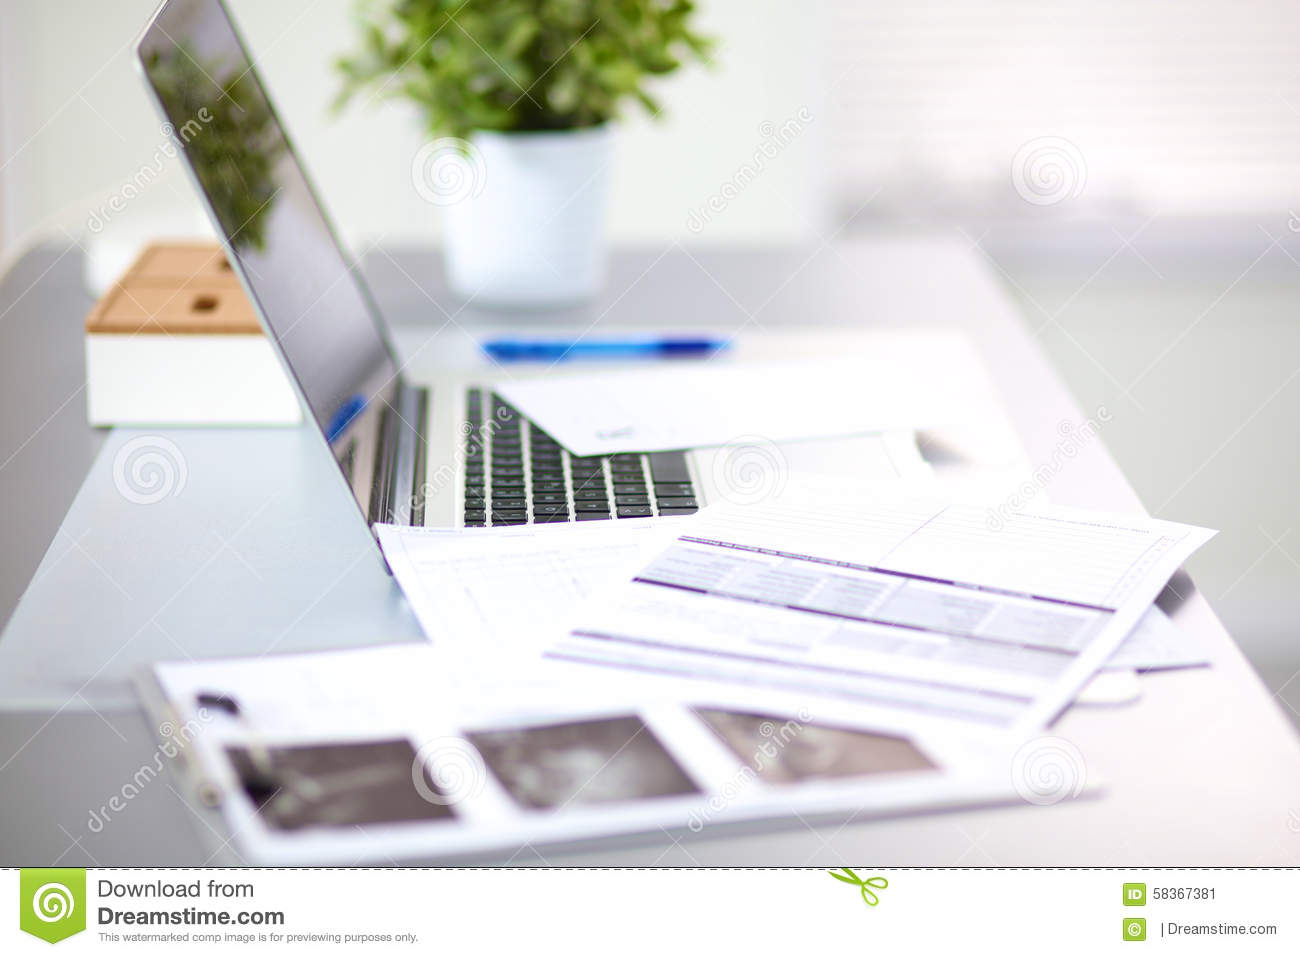 Designer Working Place At Home With Computer Stock Image - Image of ...